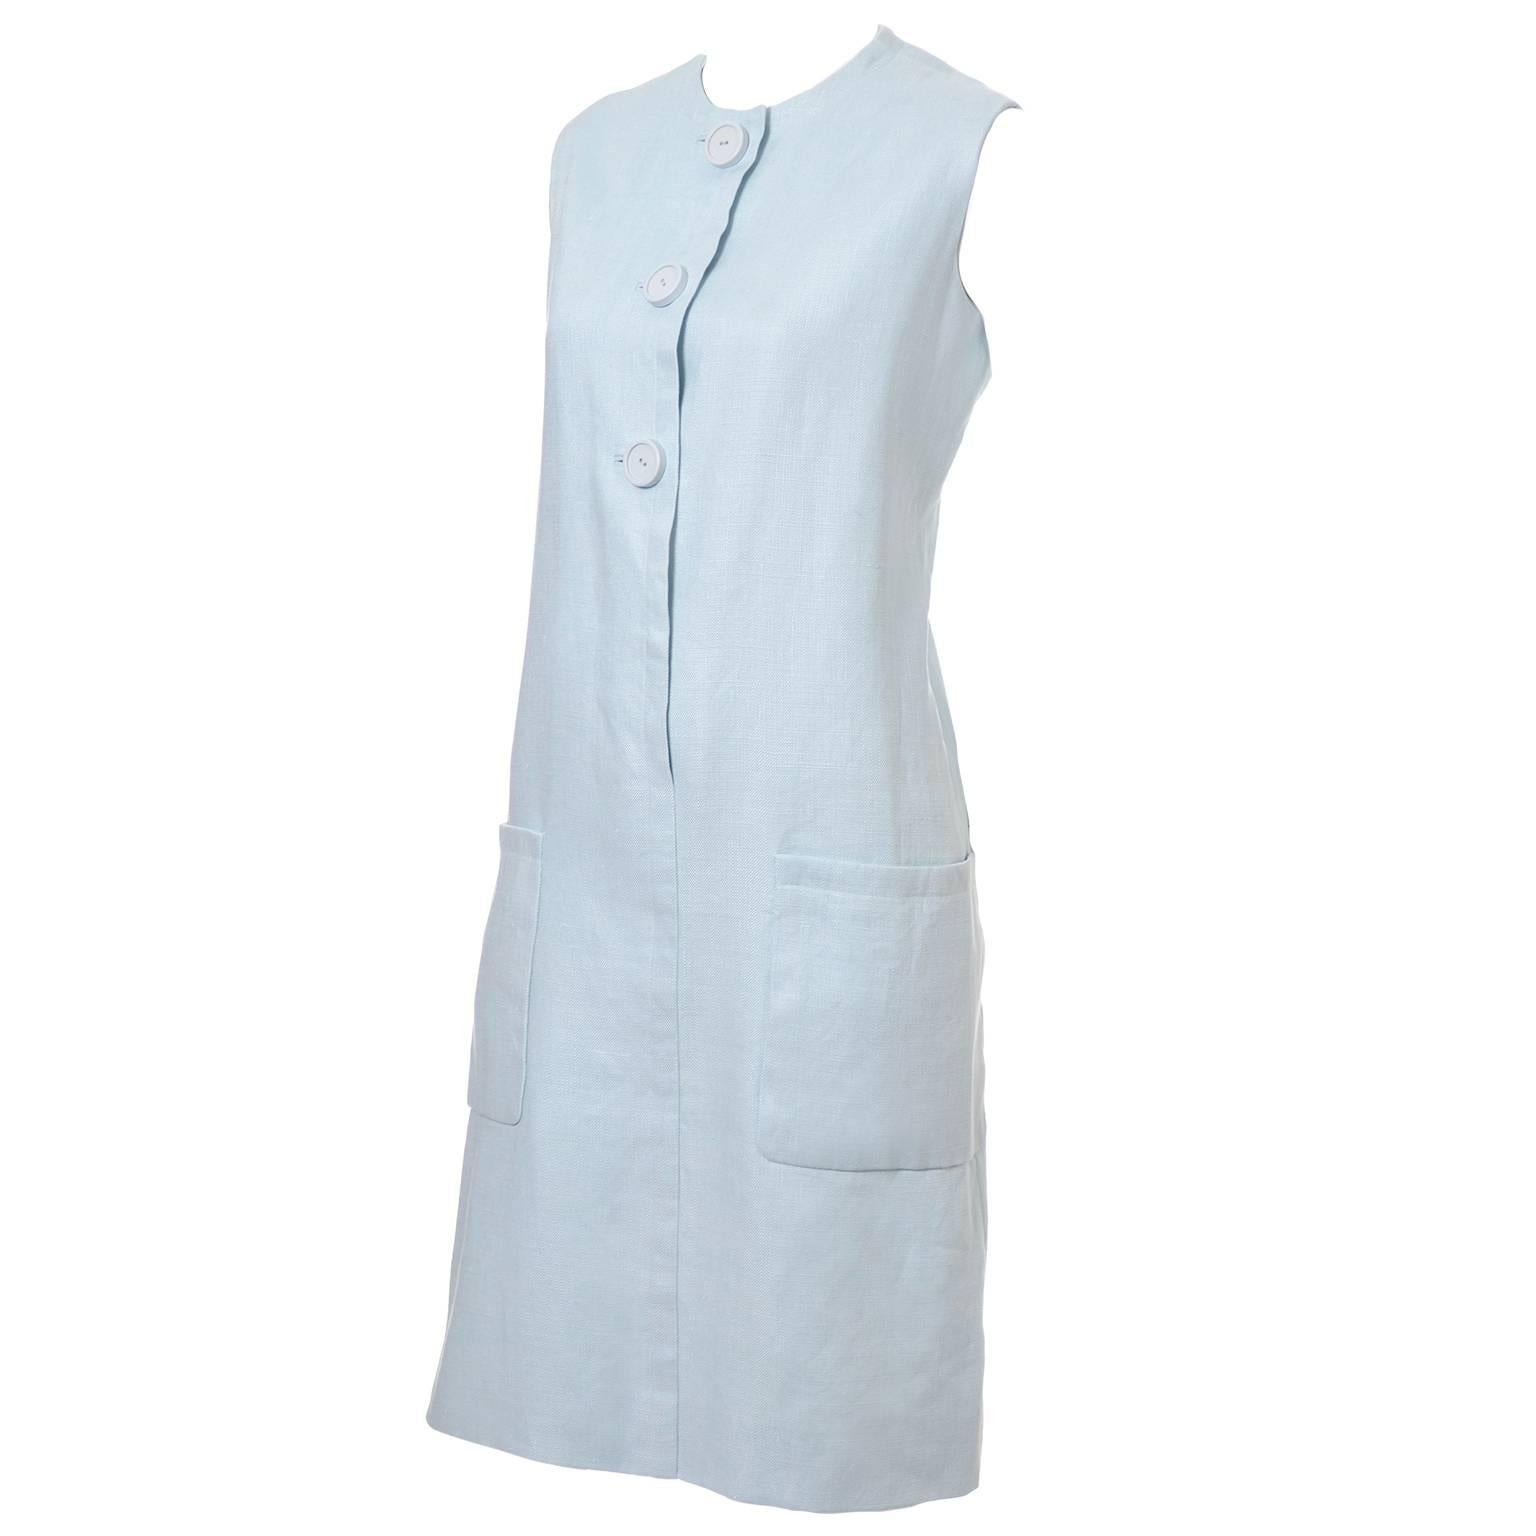 Norman Norell Vintage Dress from I Magnin in Blue Linen with Pockets